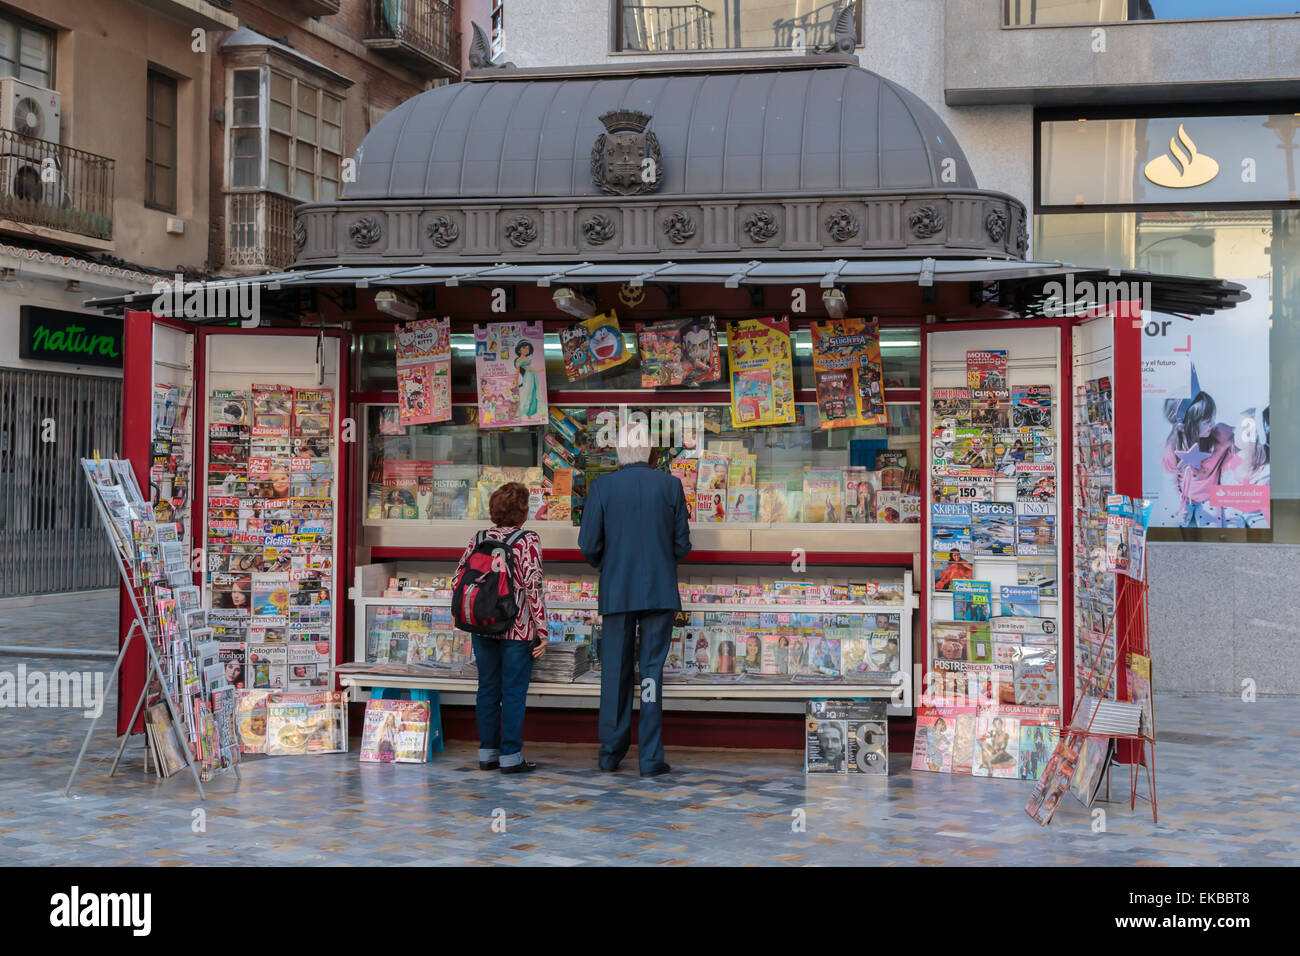 People stand at a red newspaper and magazine kiosk with fancy roof, Cartagena, Murcia Region, Spain, Europe - Stock Image